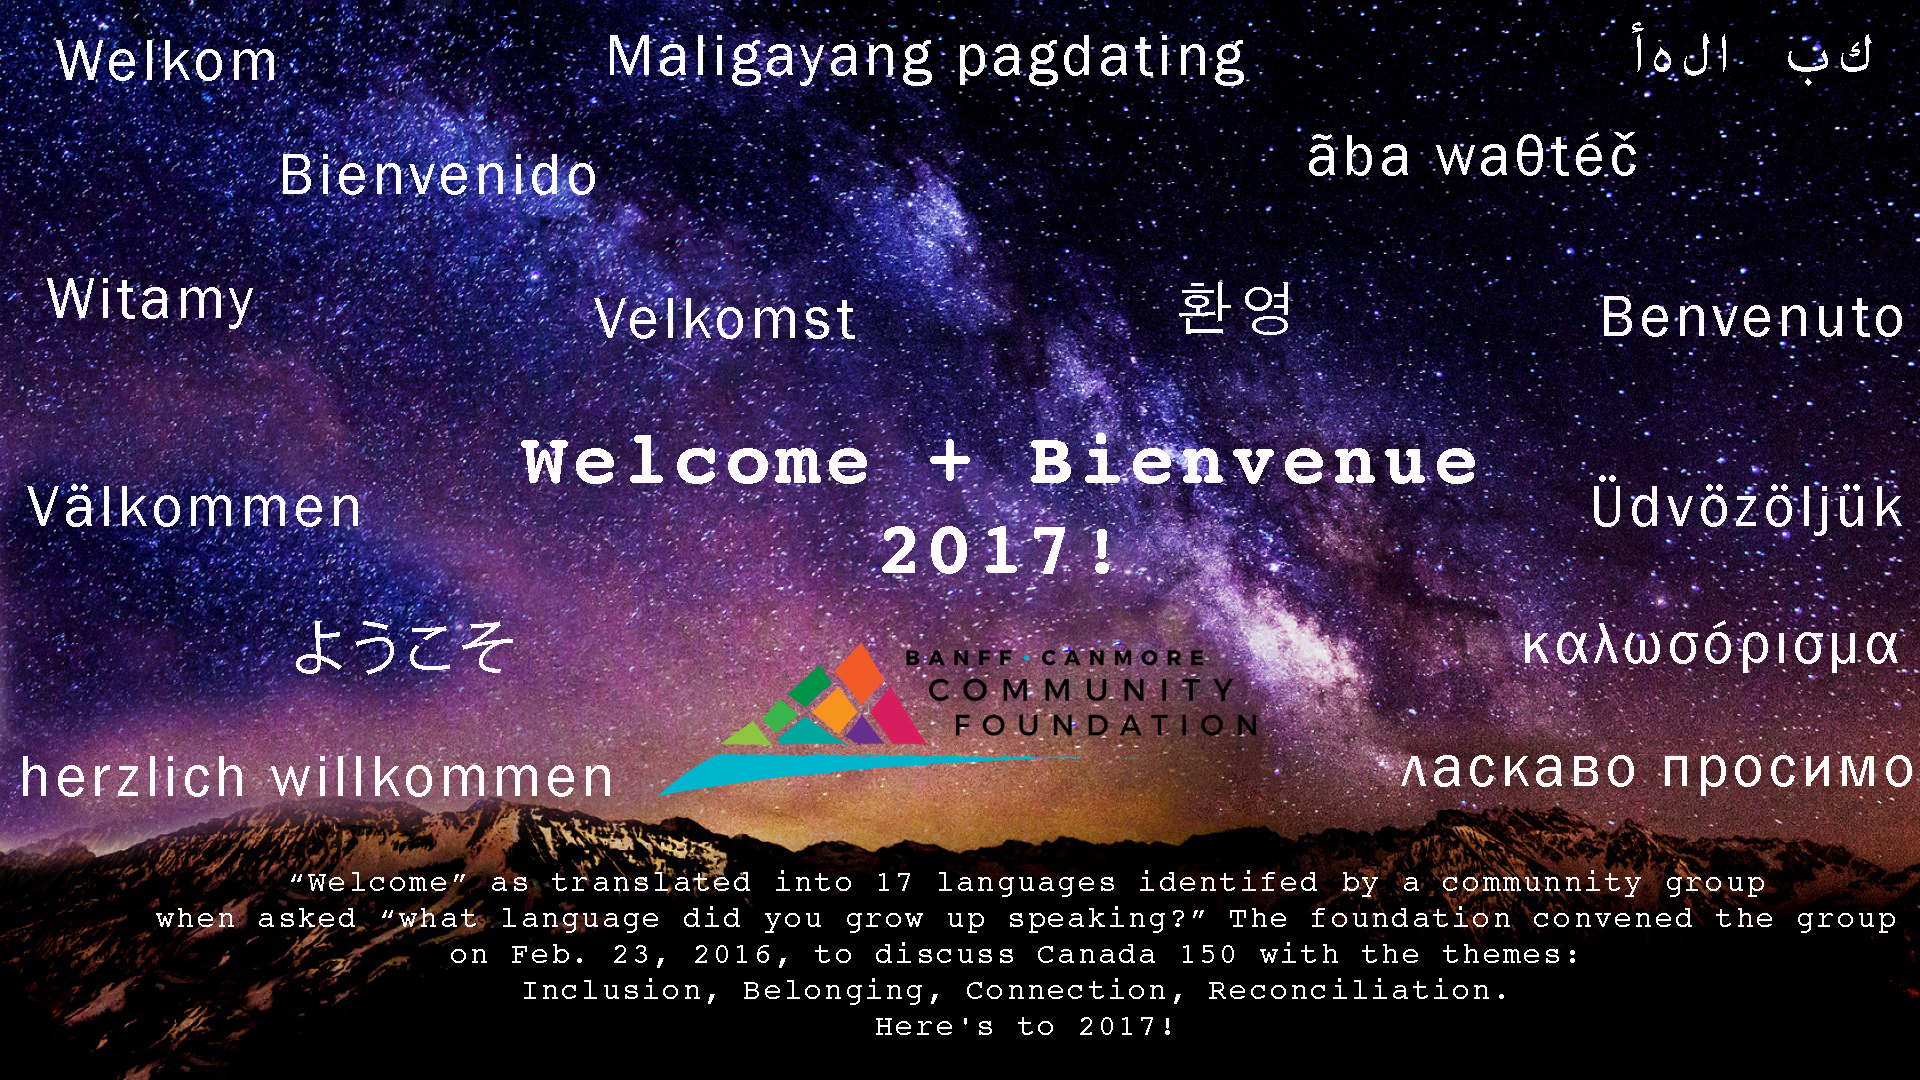 Welcome + Bienvenue 2017! - Banff Canmore Community Foundation